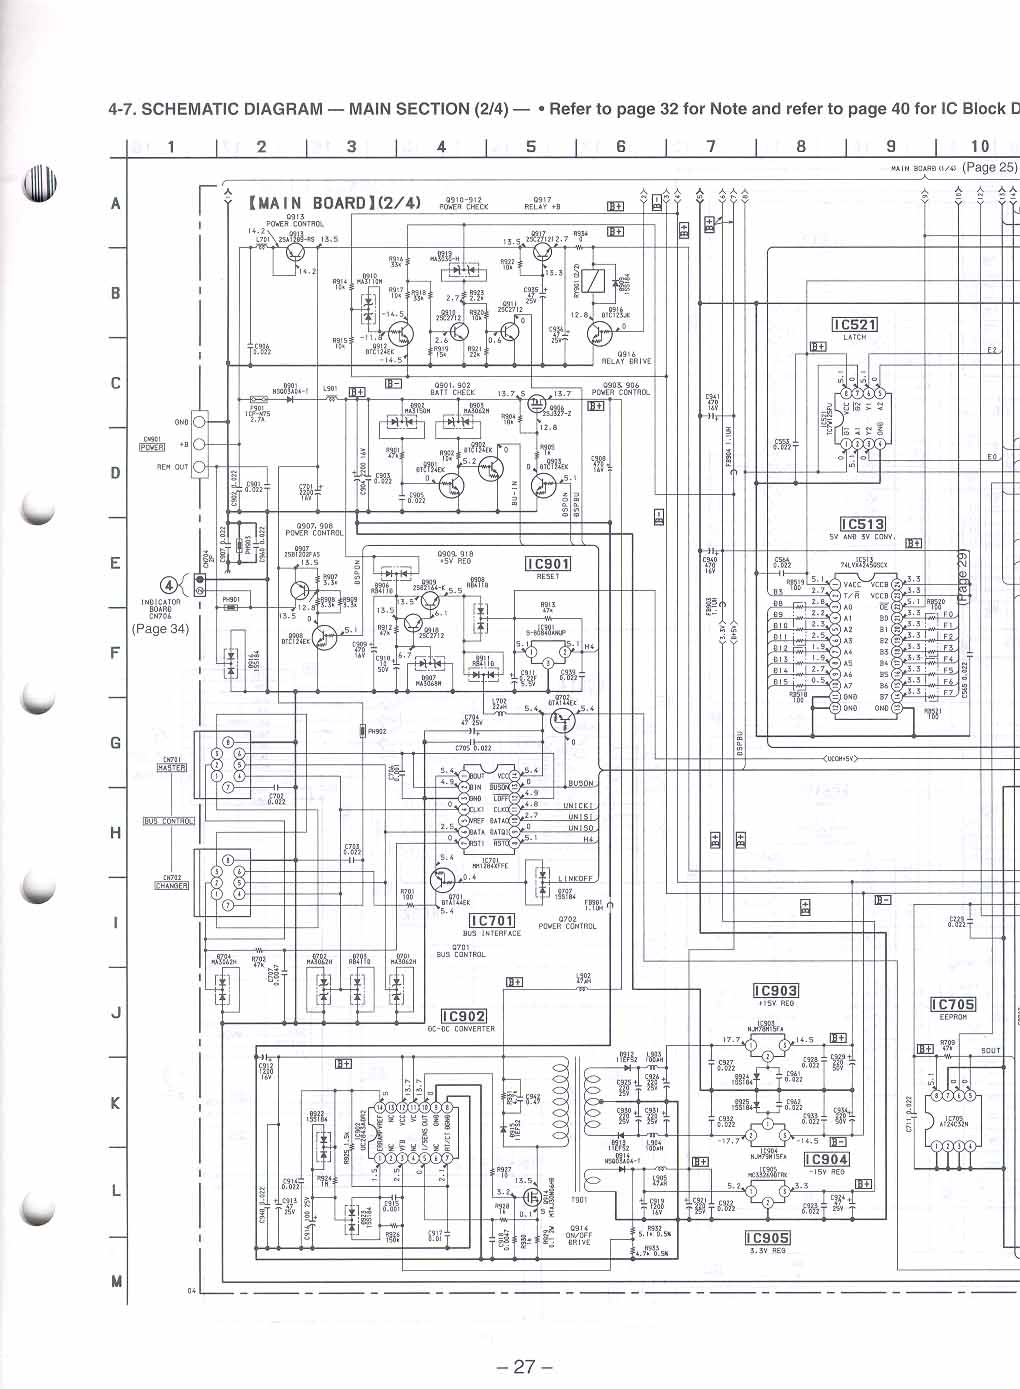 2012 Kia Optima Stereo Wiring Diagram Wiring Diagrams furthermore Kohler Mand Wiring Diagram besides International Truck Abs Wiring Diagram together with Bendix Wiring Diagram Symbols as well 4700 International Truck Wiring Diagrams. on bendix wiring diagram